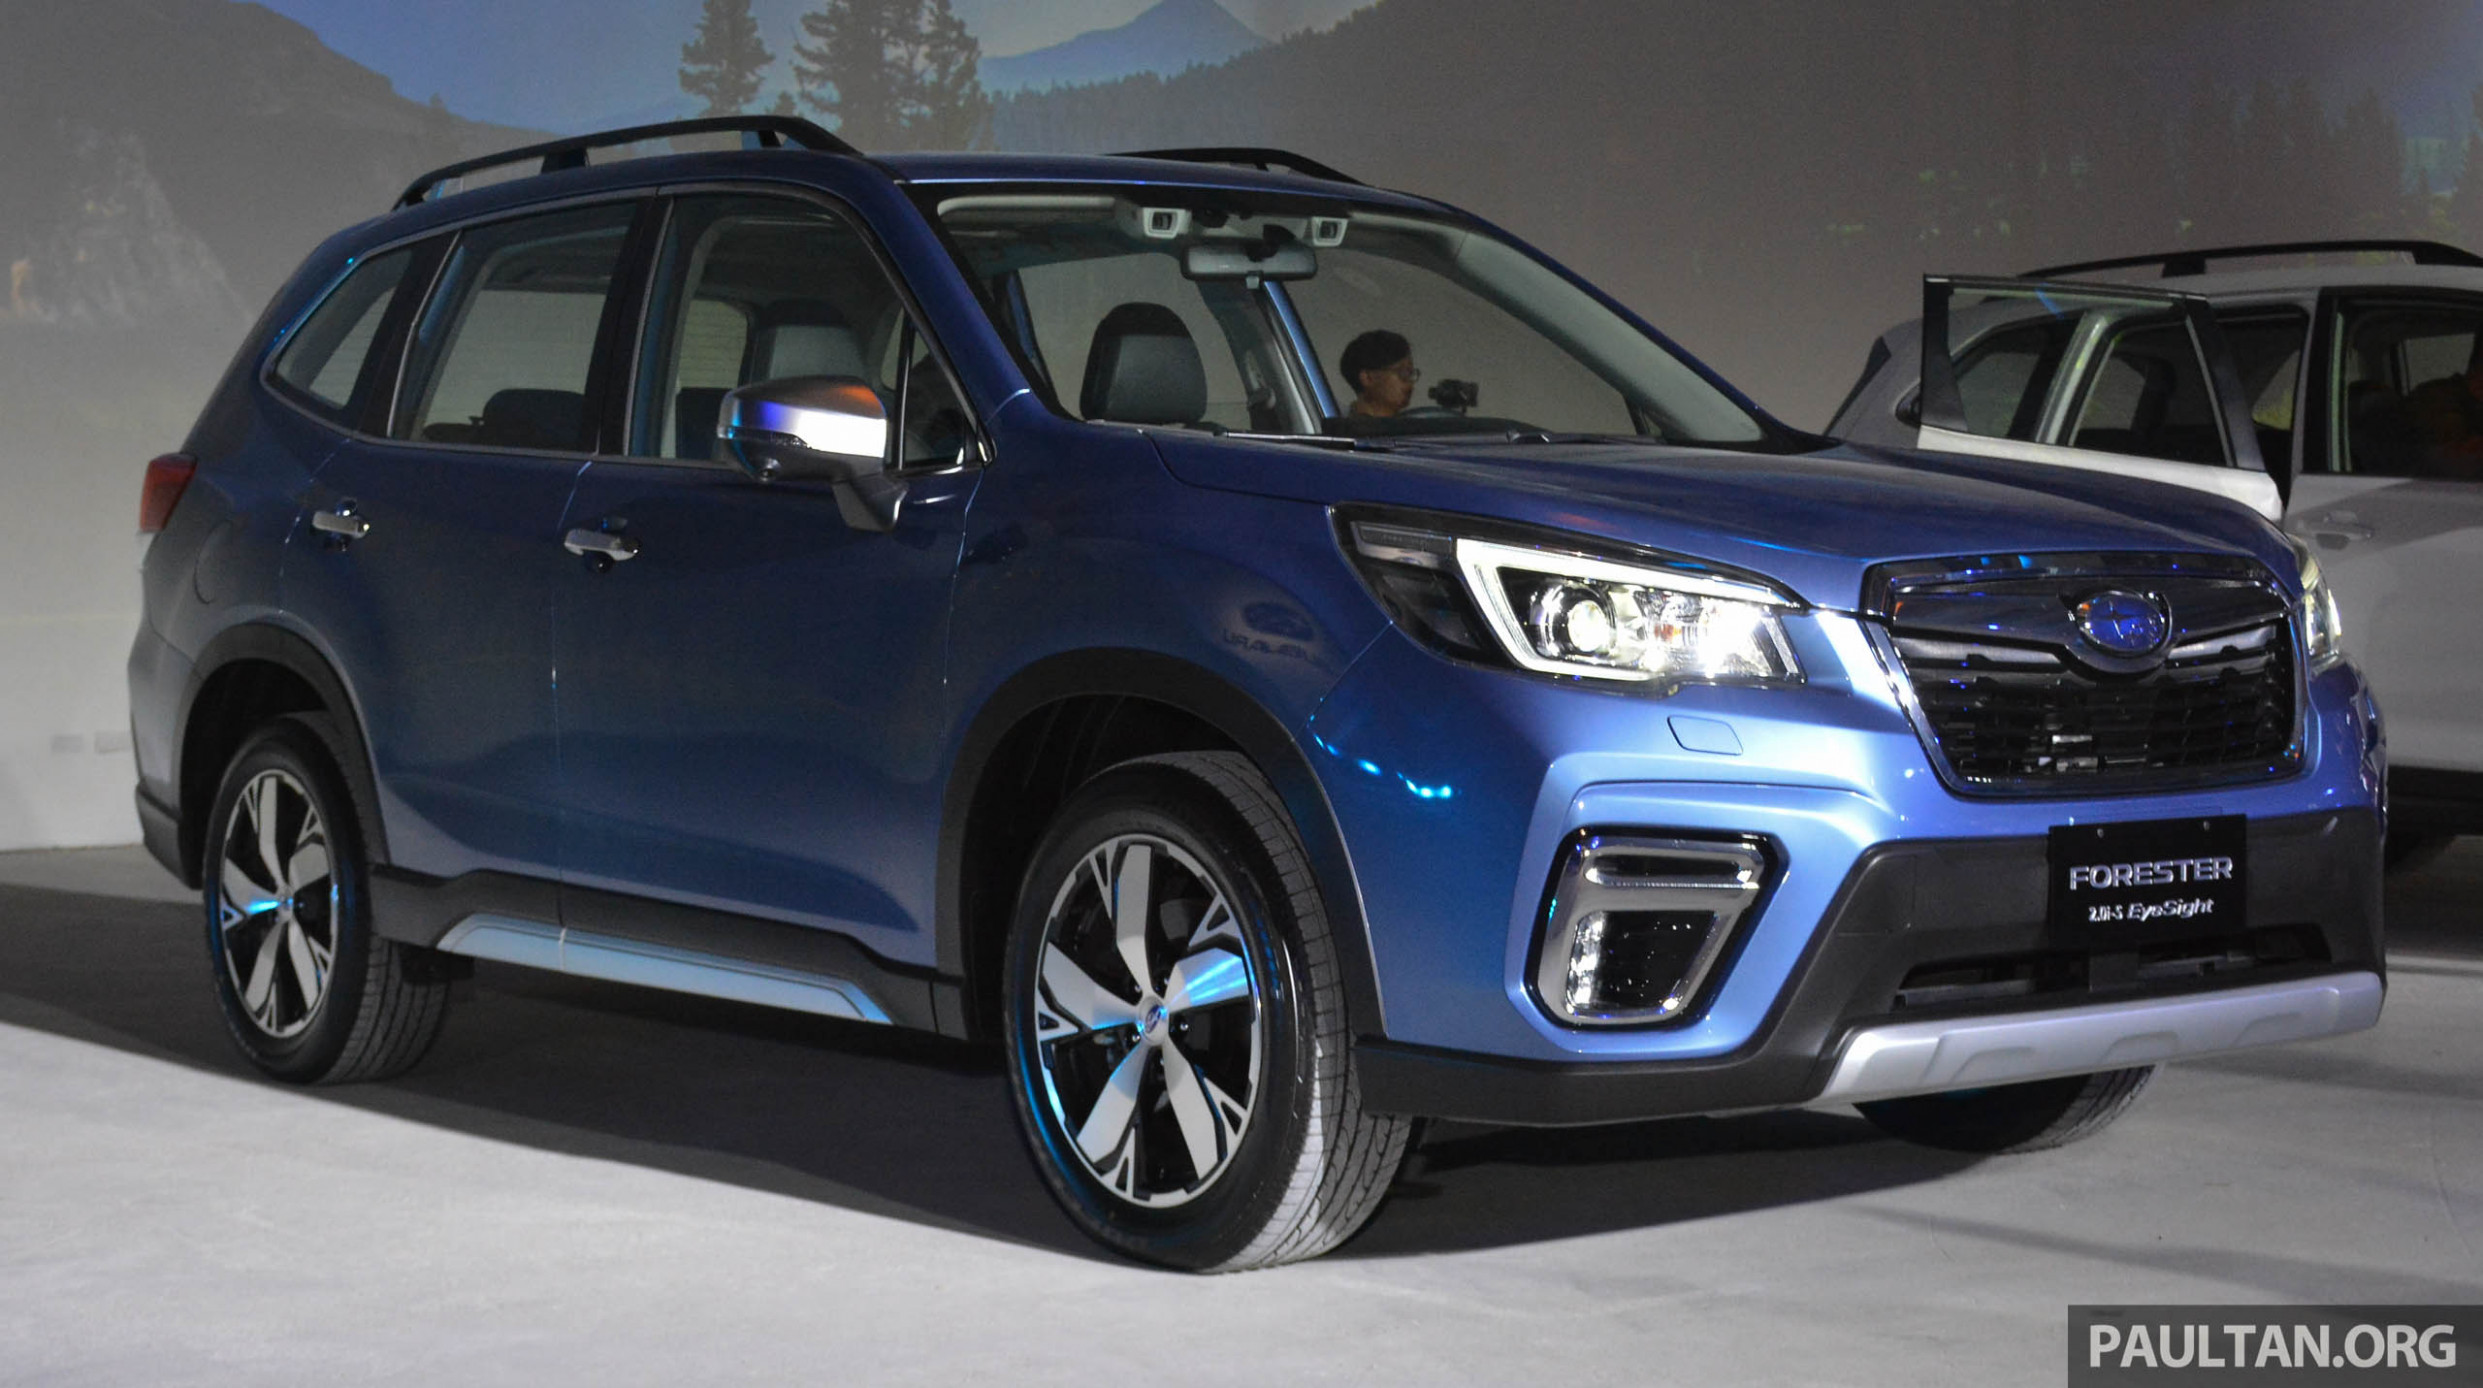 New Subaru Forester coming to Malaysia in mid-8 with EyeSight ..